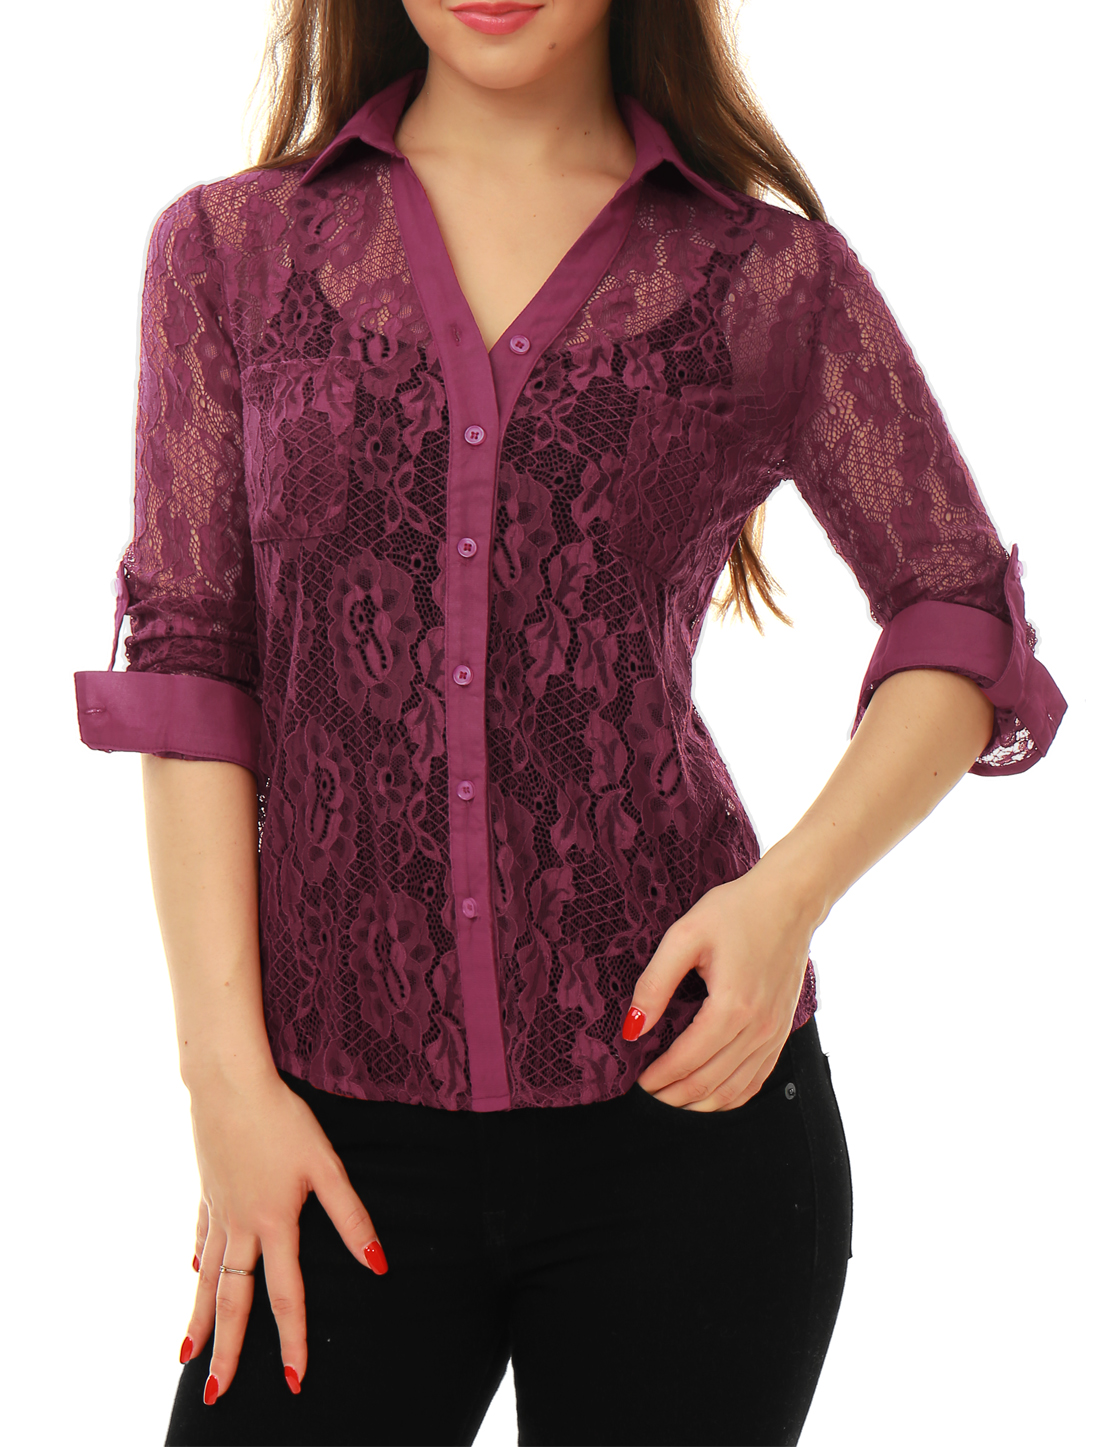 Women Roll Up Sleeves See Through Floral Lace Shirt Purple XS